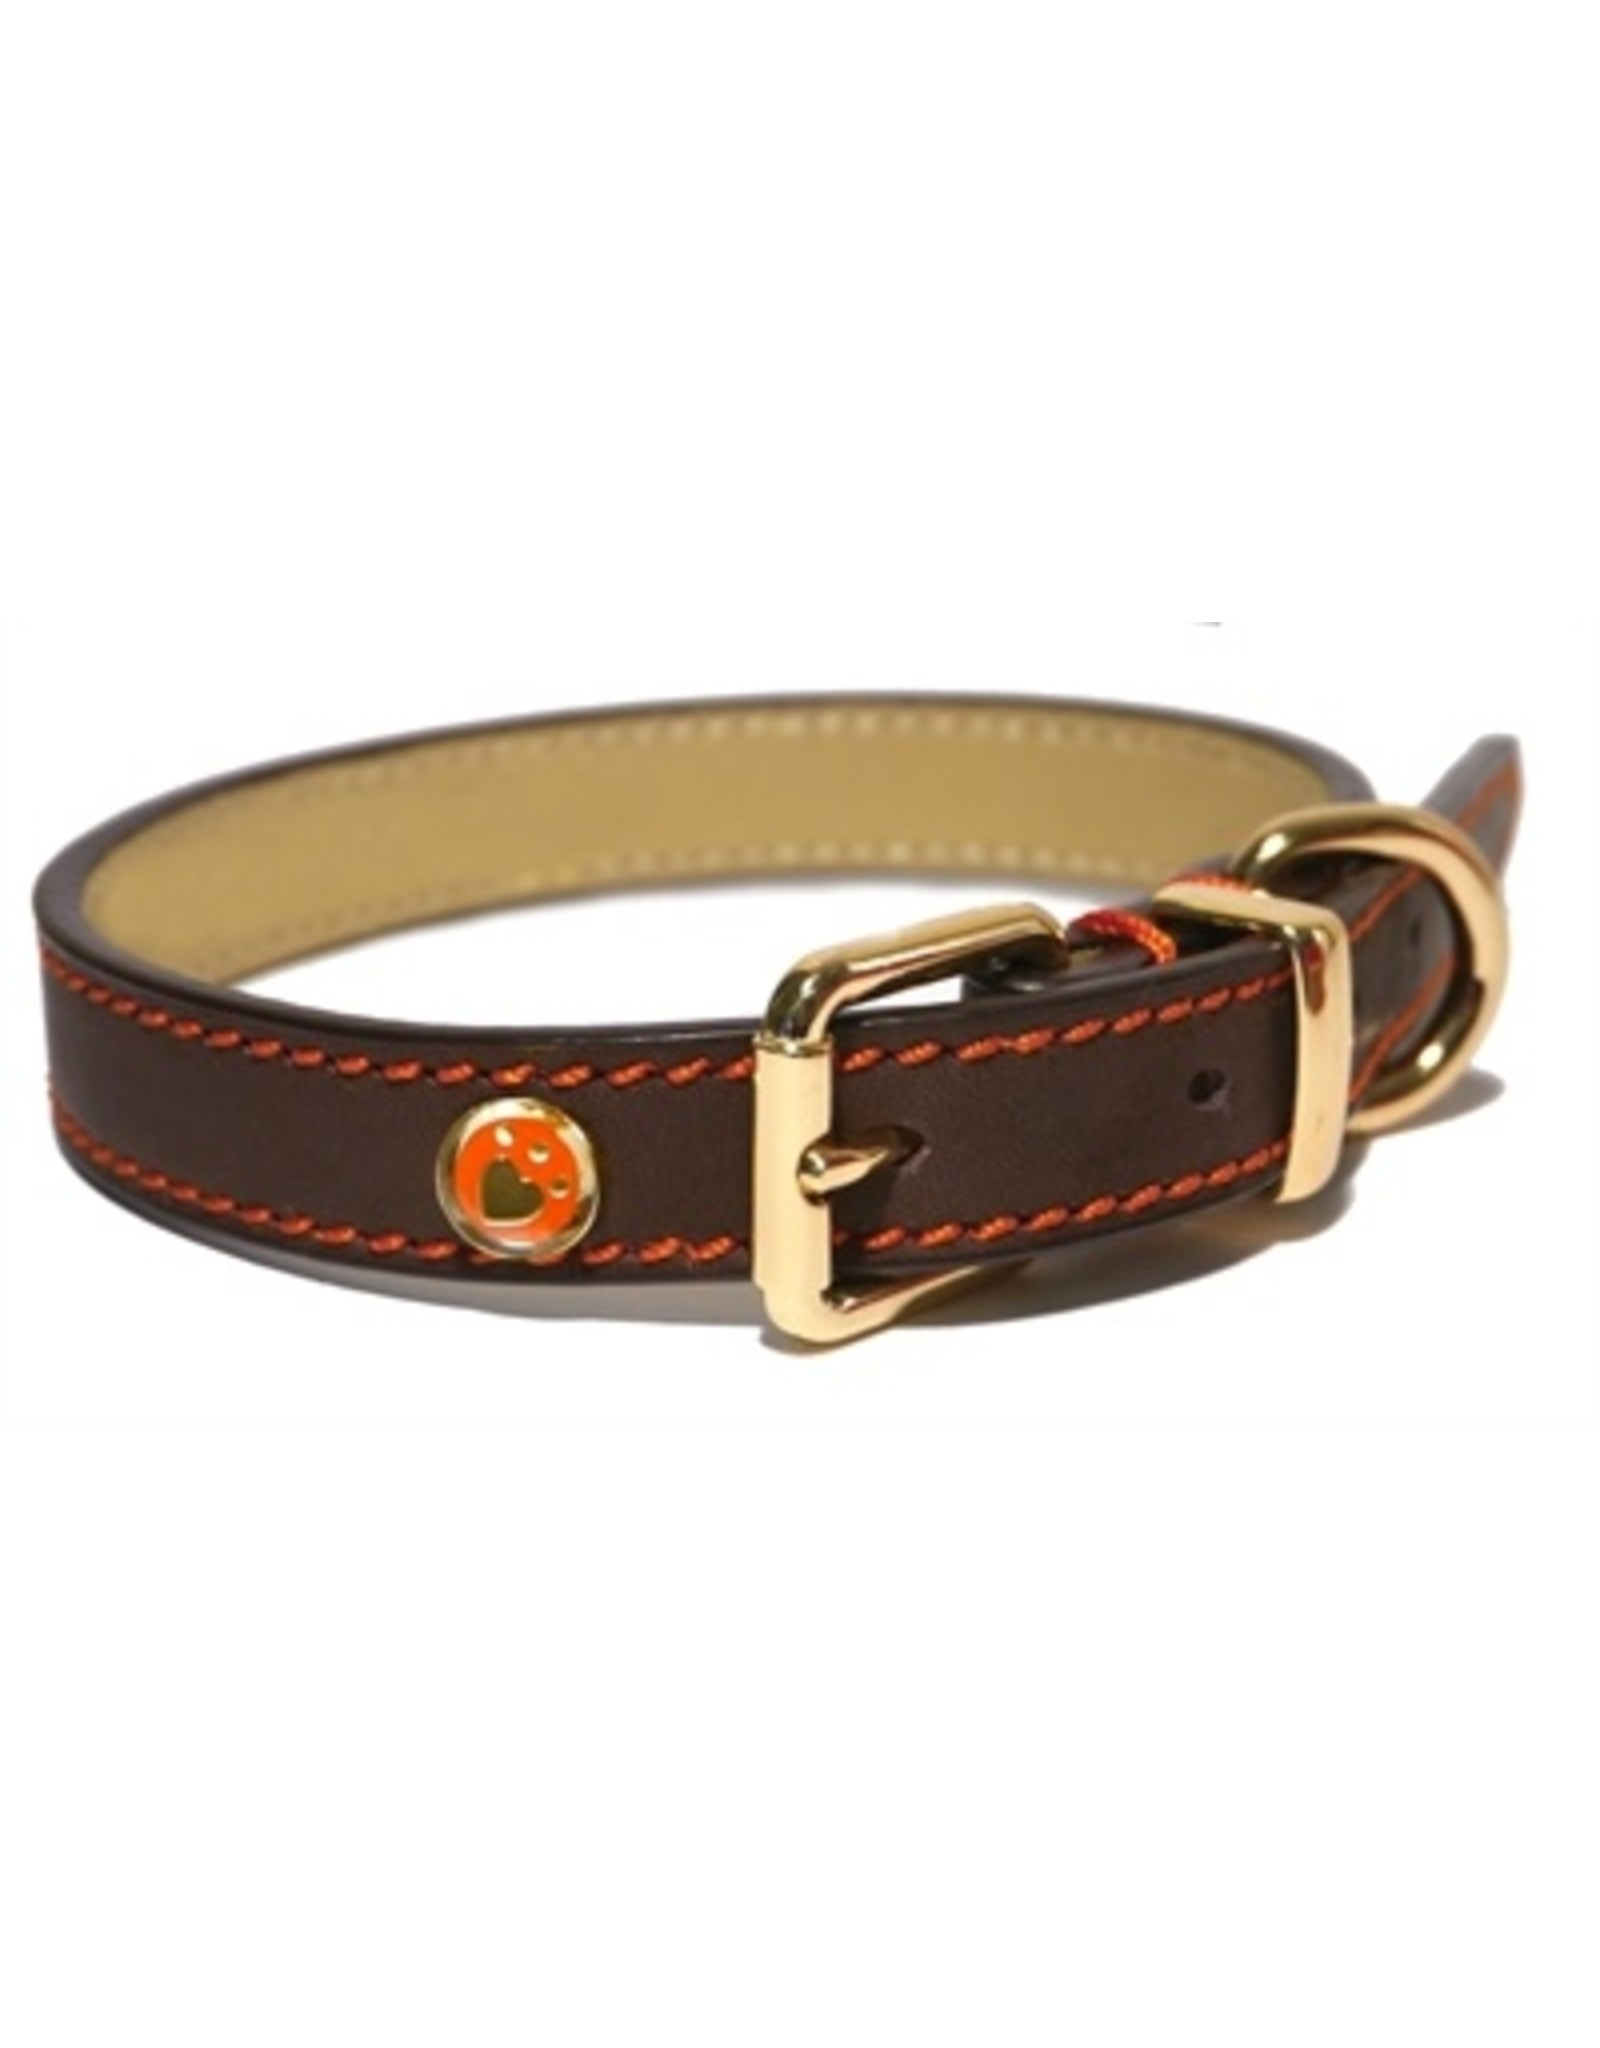 Rosewood Luxury leather halsband hond leer luxe bruin